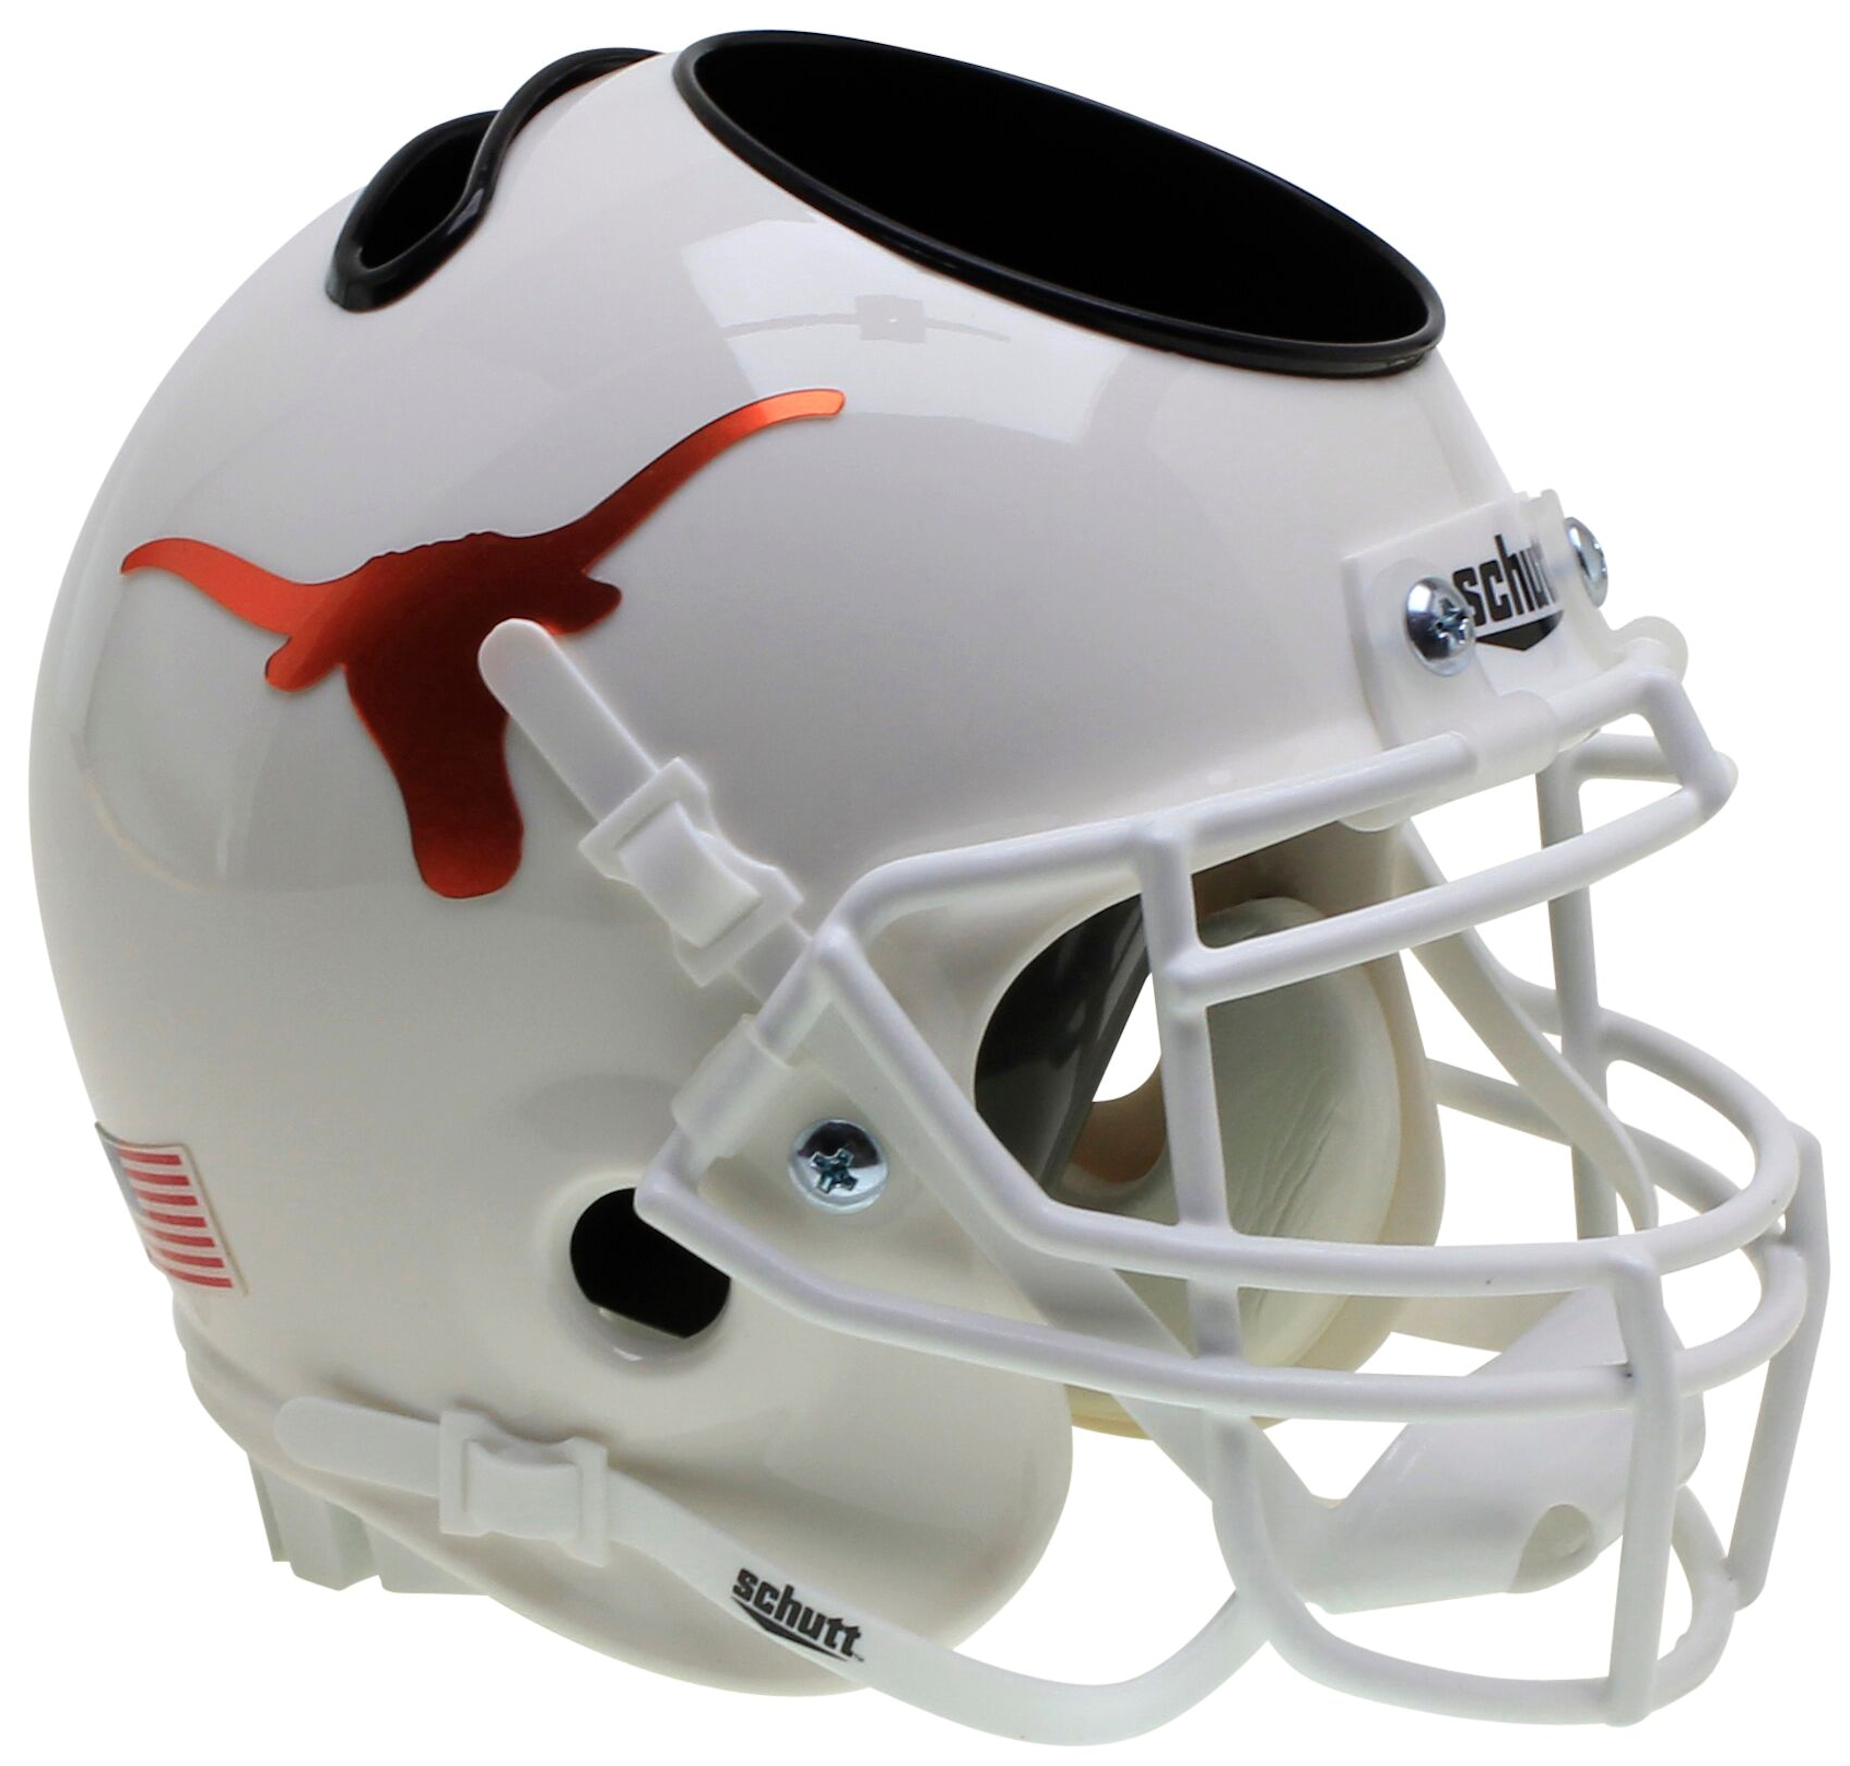 Texas Longhorns Miniature Football Helmet Desk Caddy <B>Chrome Decal</B>